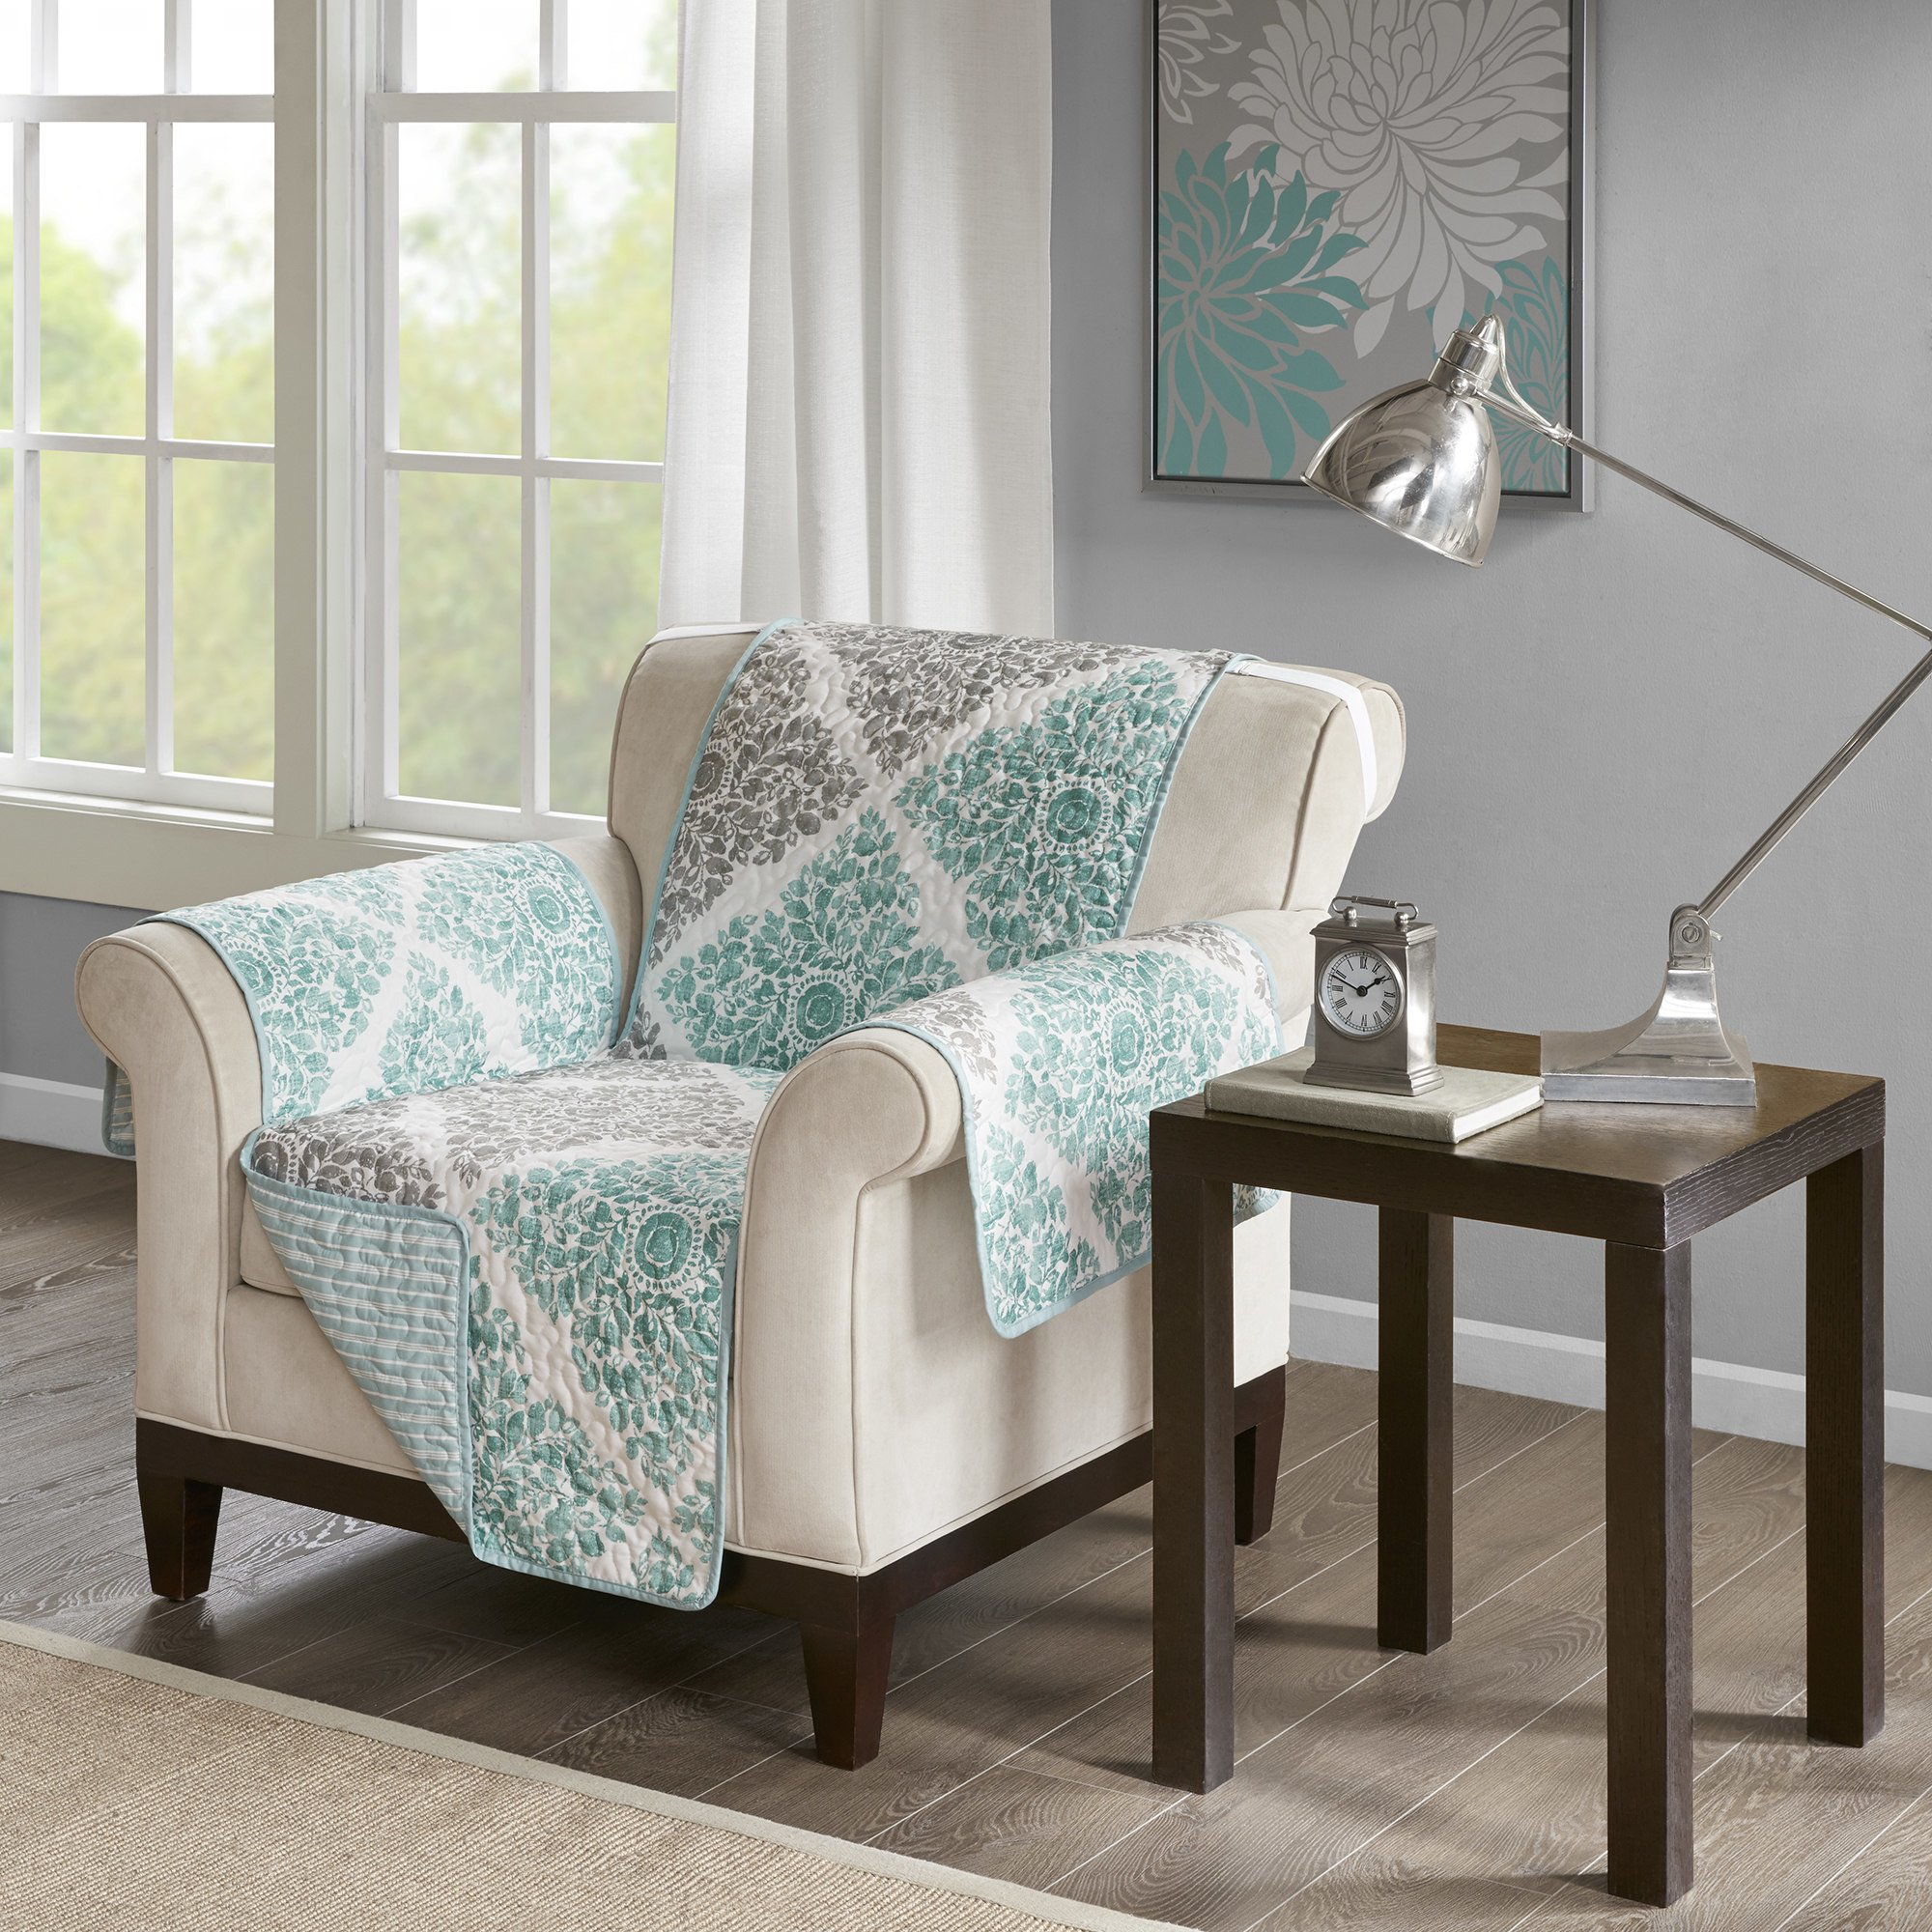 MN 1 Piece Grey Teal Floral Theme Chair Protector, Geometric Bright Color Flower Pattern Couch Protection Flowers Leaves Furniture Protection Cover Pets Animals Covers Nature Motif, Polyester